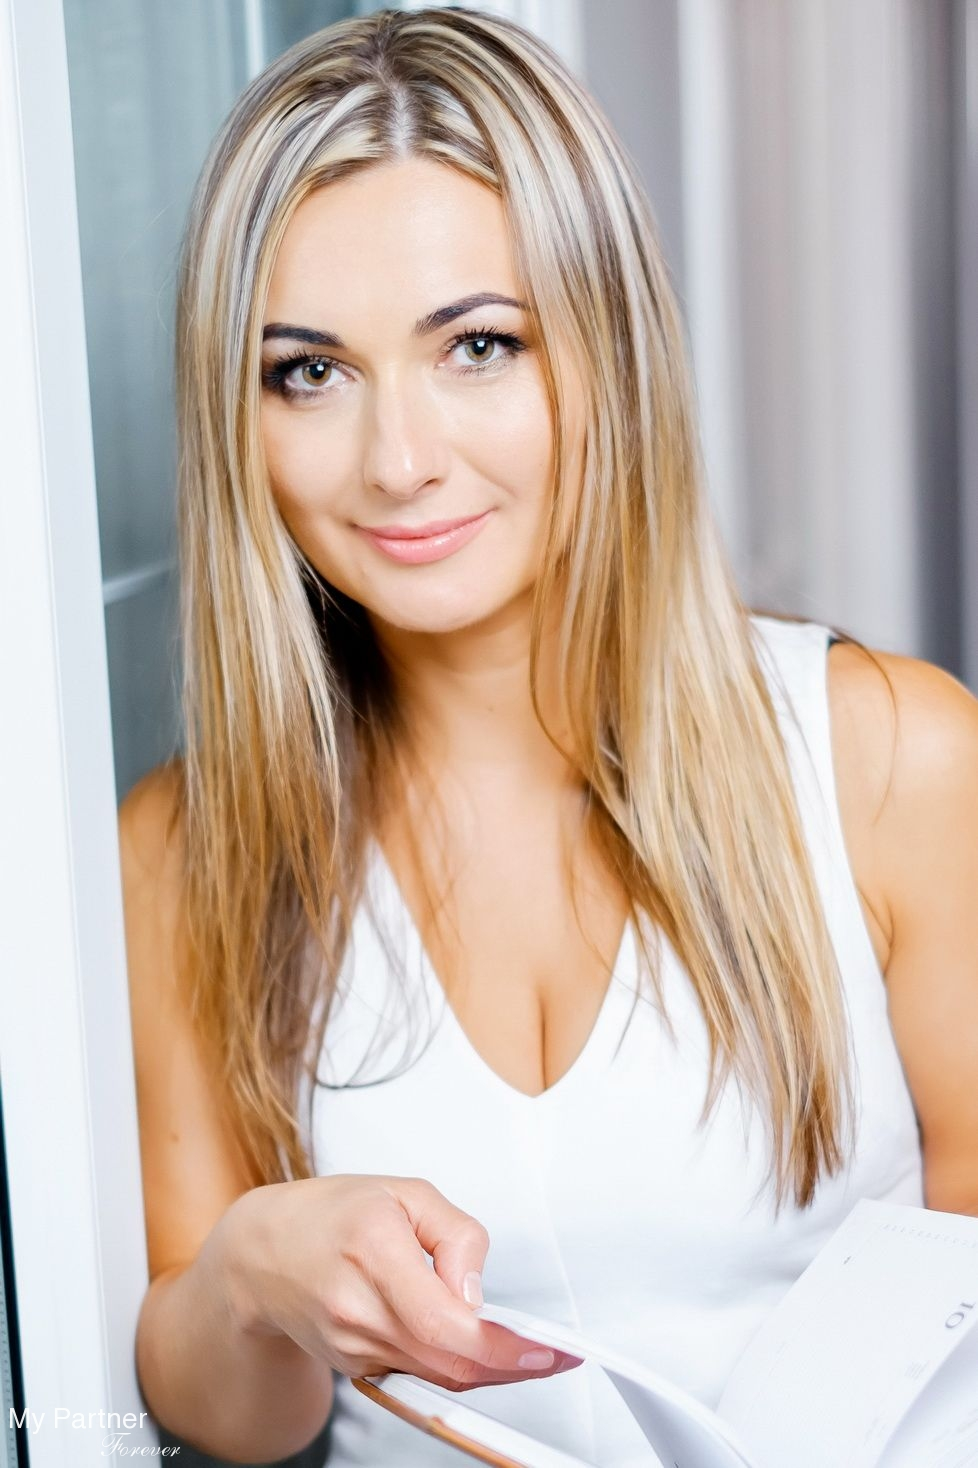 Dating Site to Meet Sexy Belarusian Woman Olga from Grodno, Belarus